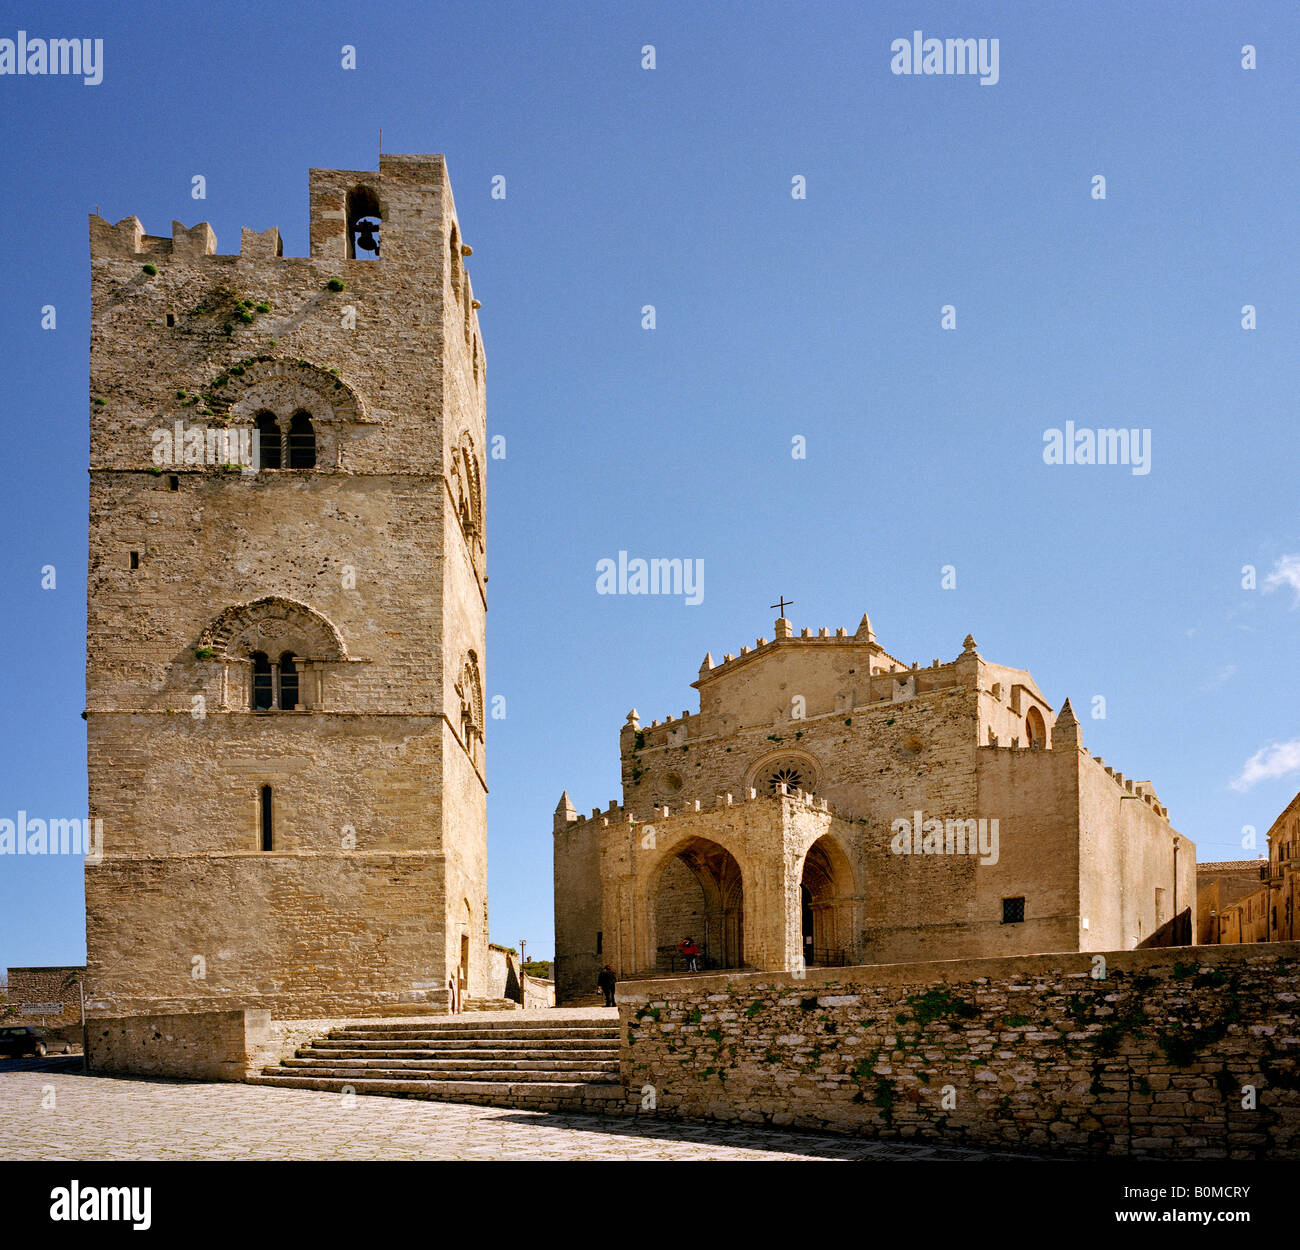 The Royal cathedral and King Frederick II Campanile bell tower Erice Sicily Italy EU - Stock Image